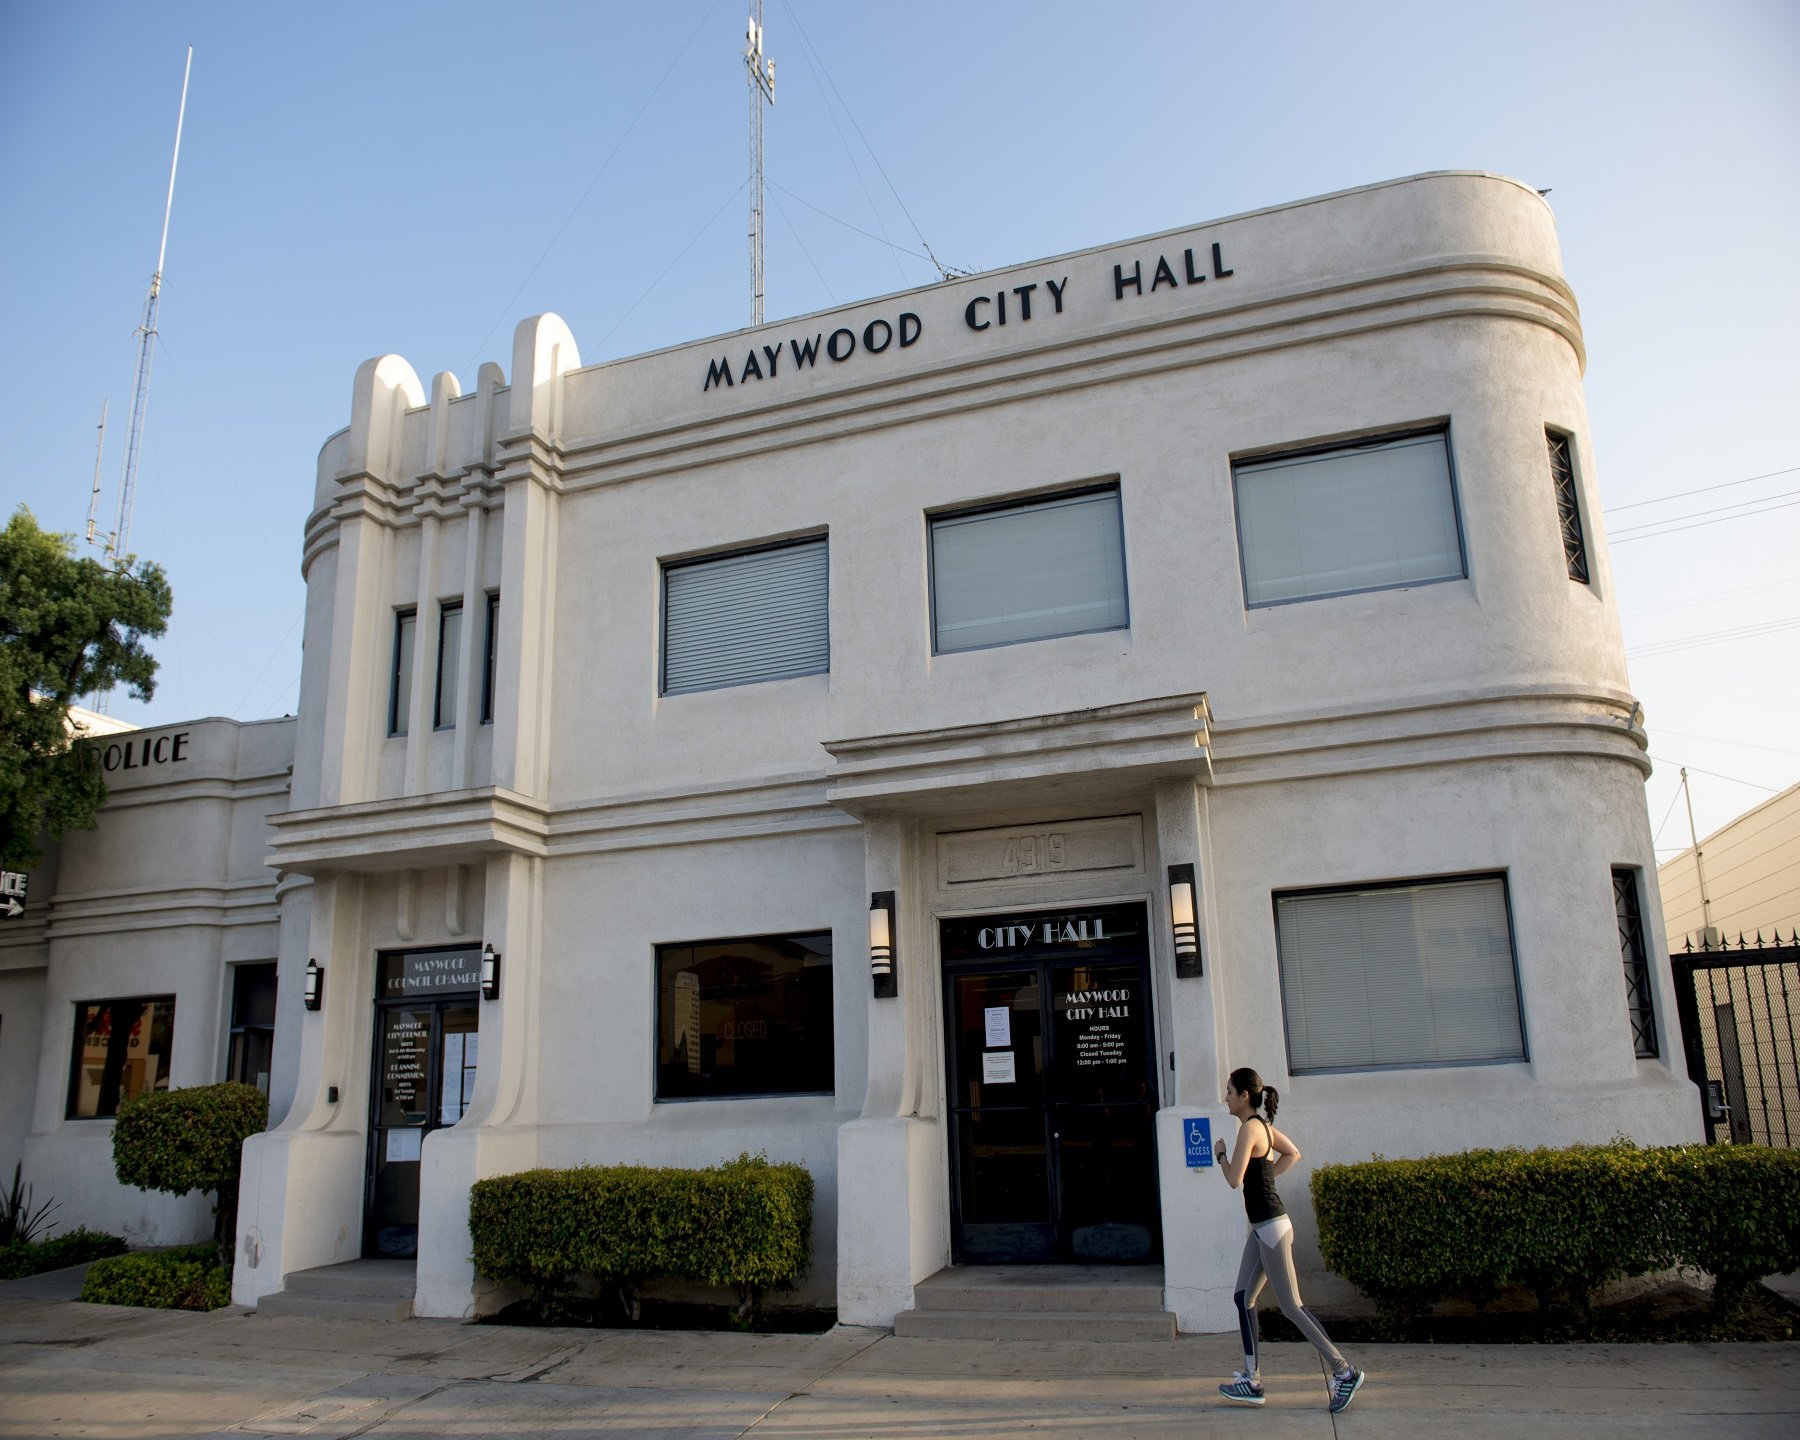 official website of the city of maywood  california